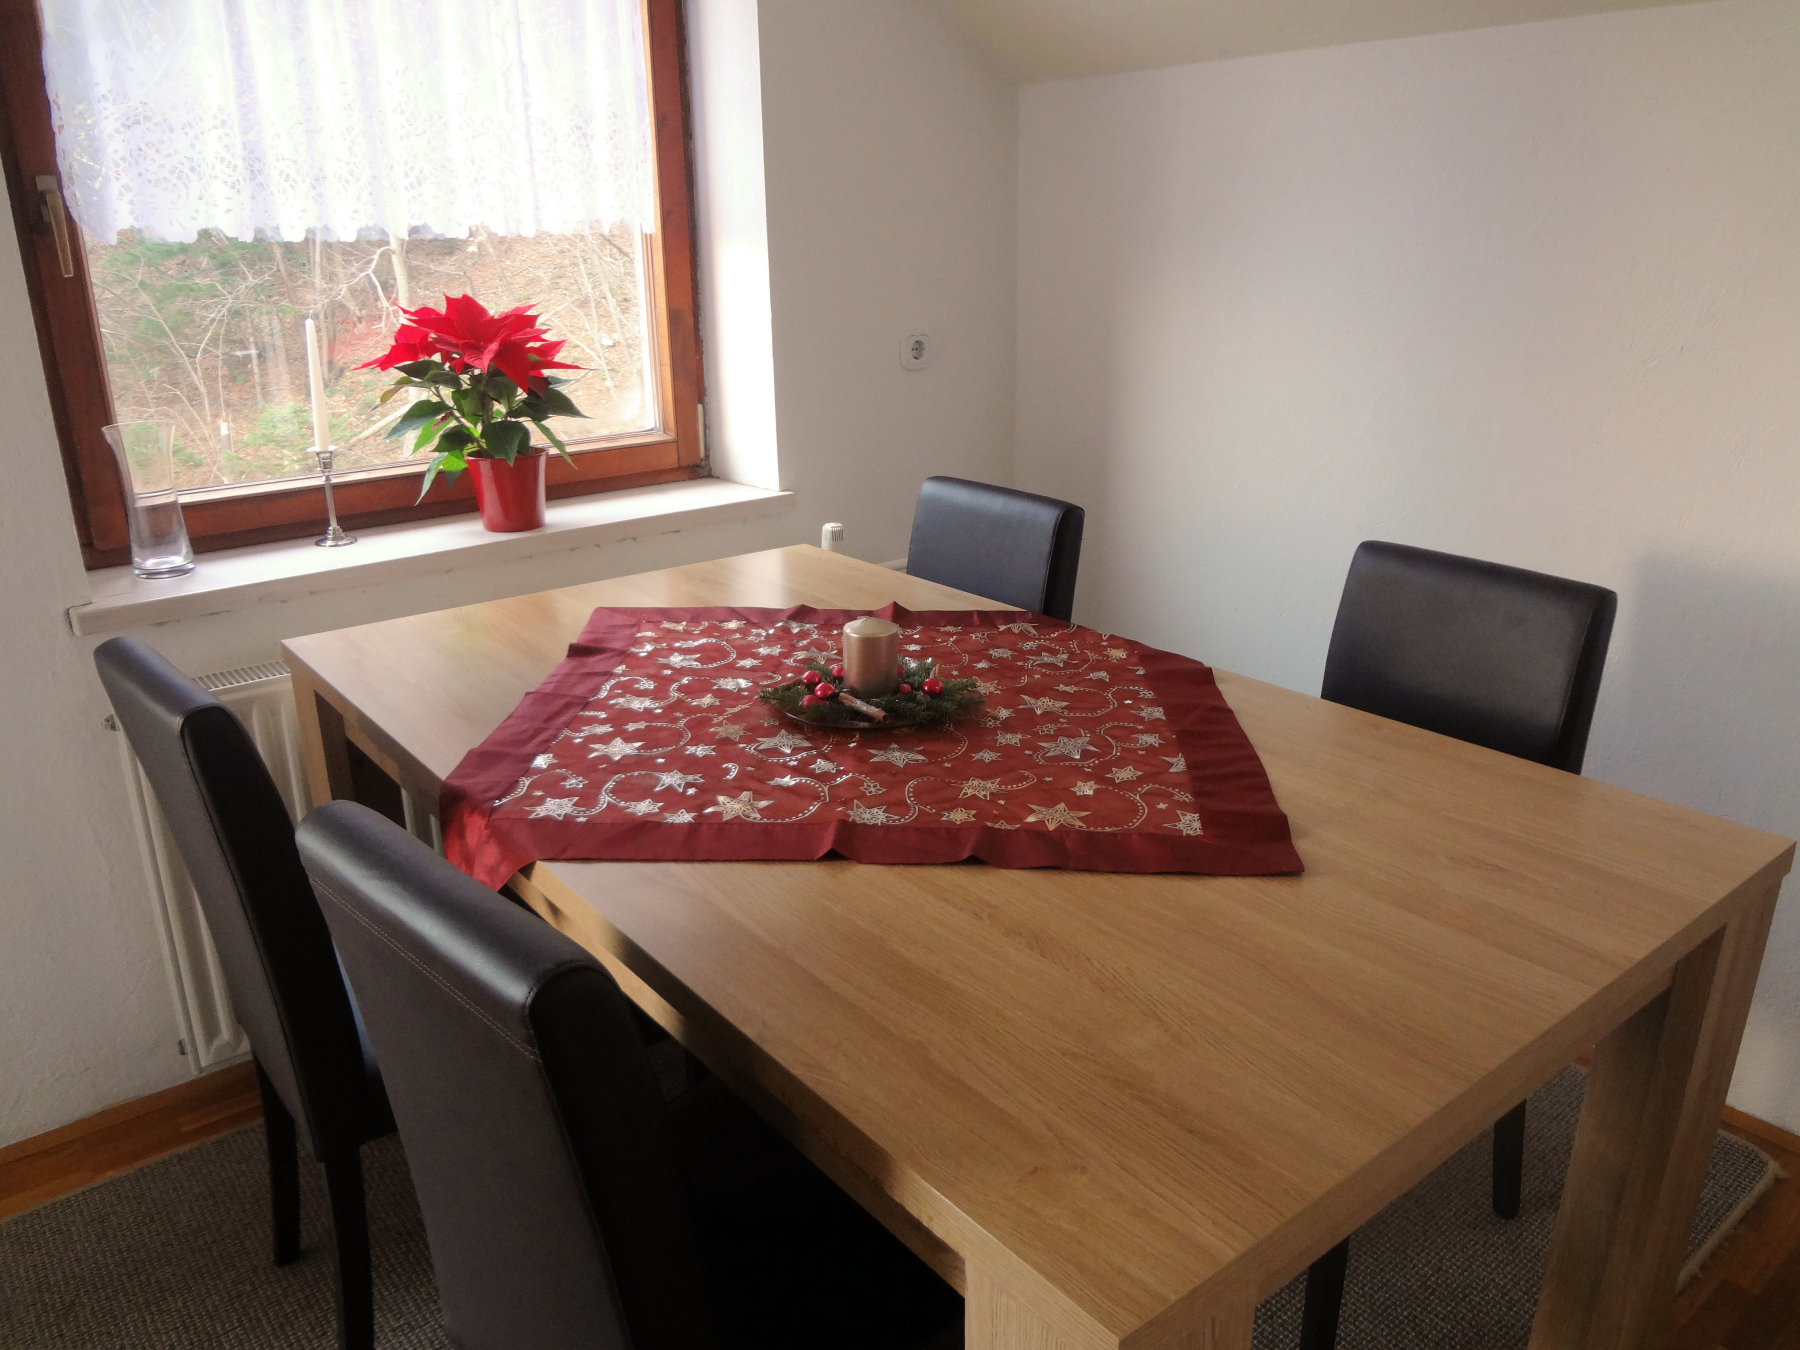 Holiday decorations and a poinsettia in the dinning area of the Fine Stay Apartment in Slovenia